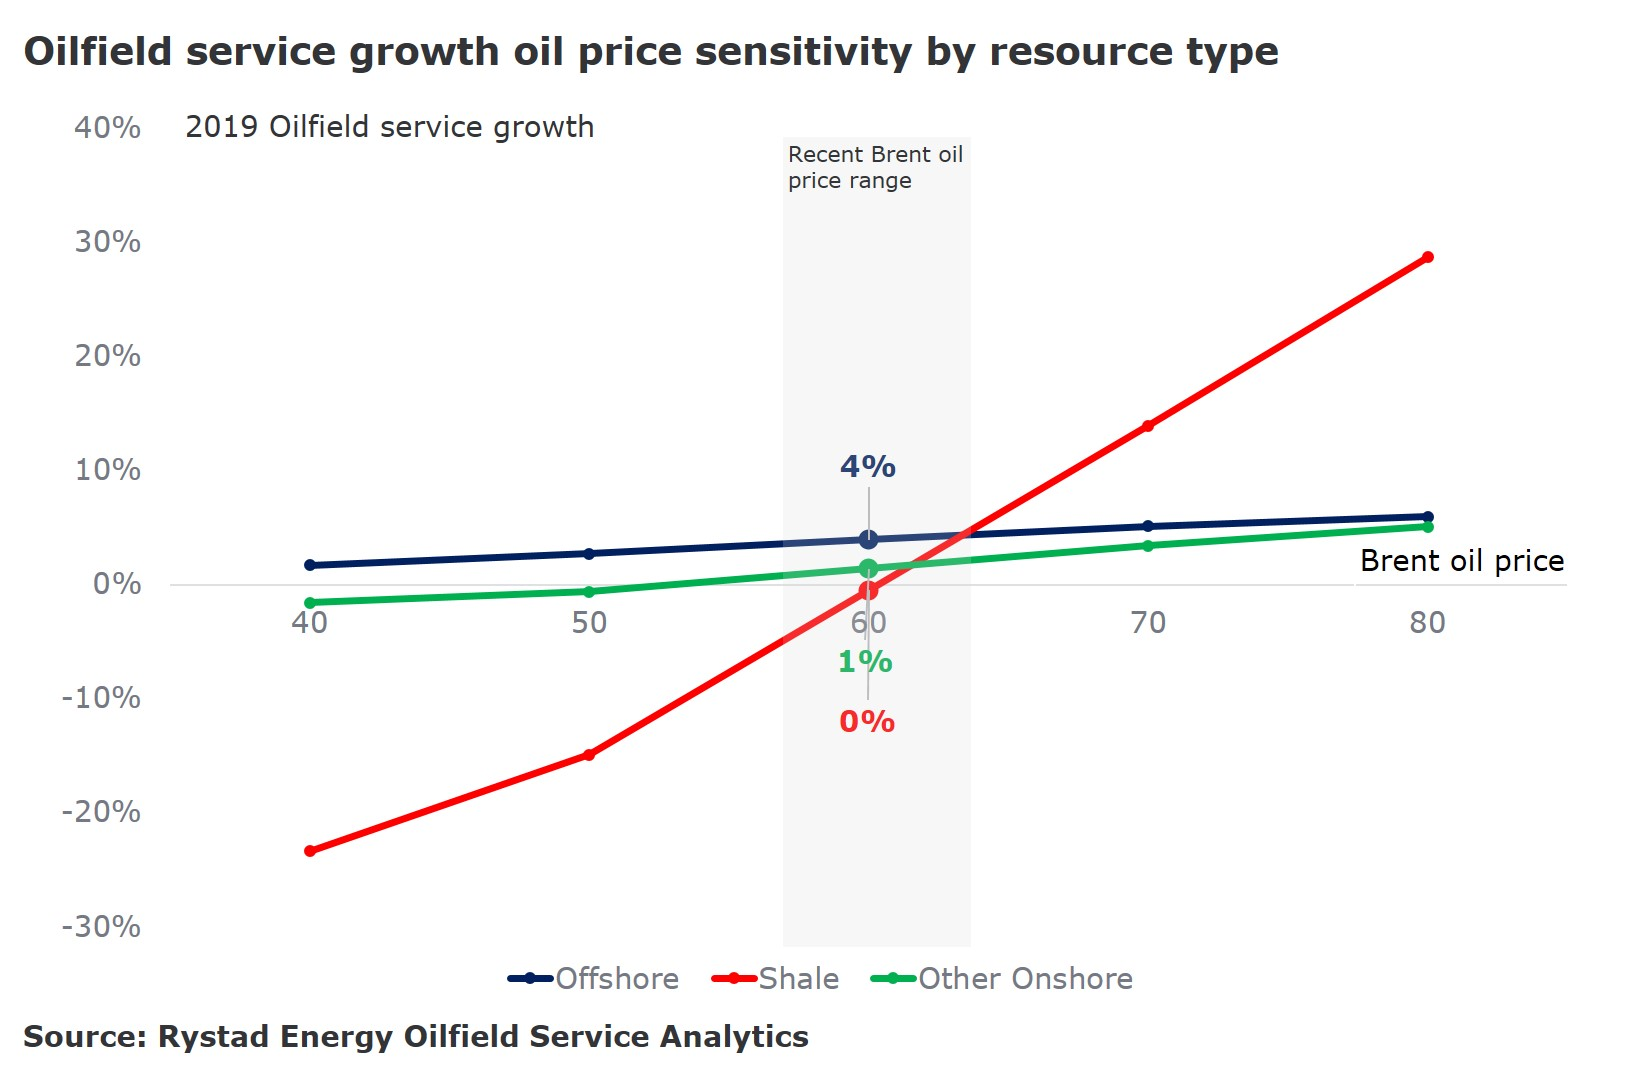 A chart showing the oilfield service growth oil price sensitivity by resource type